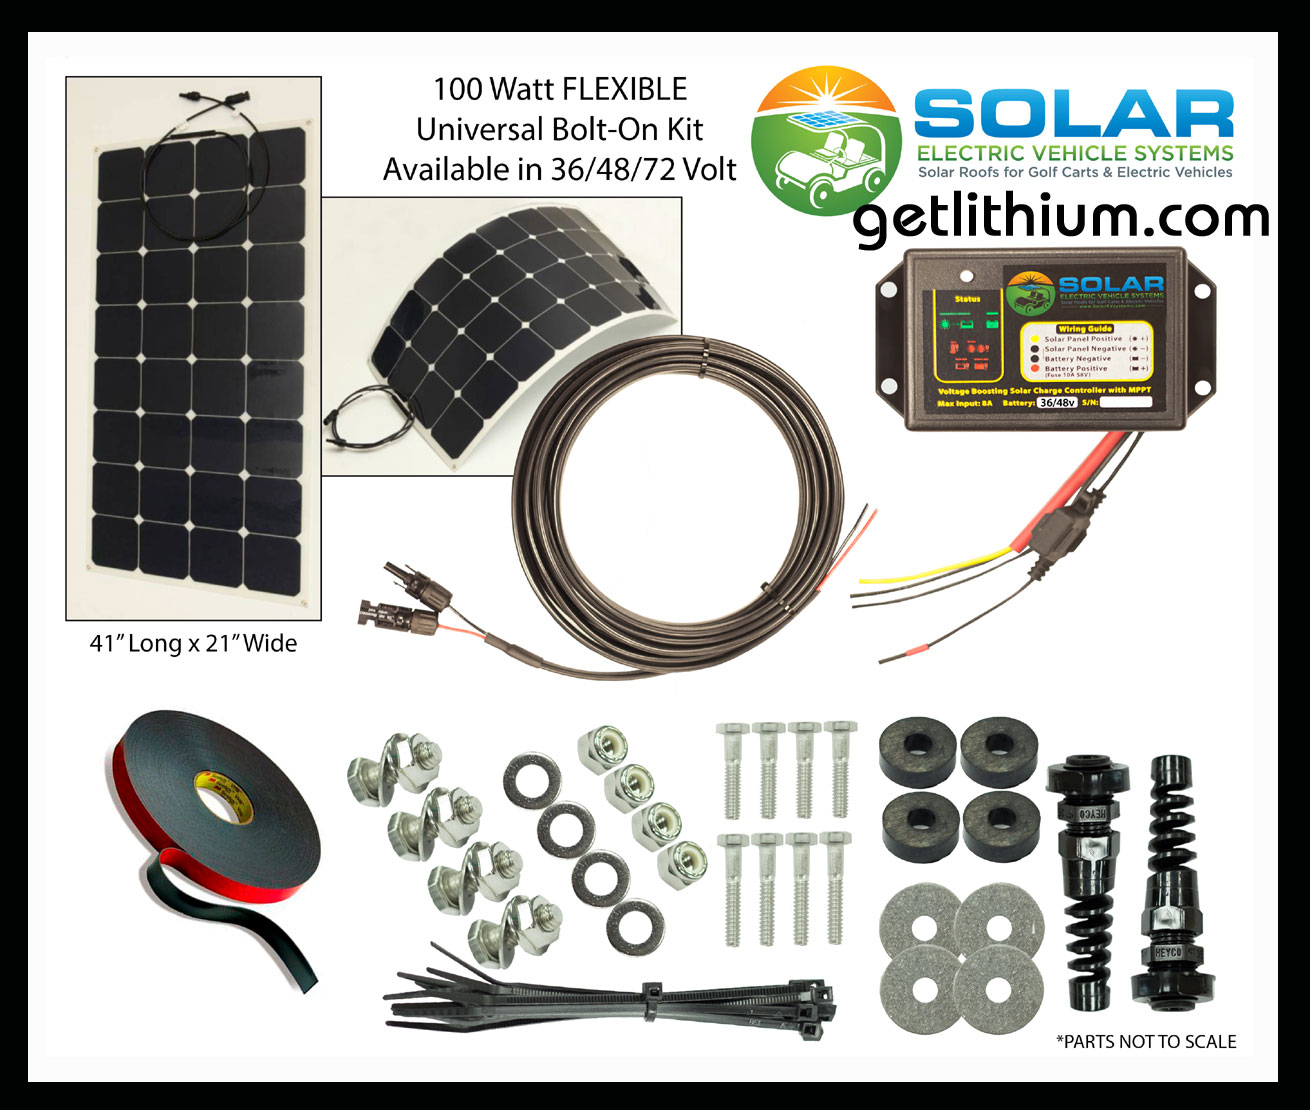 Solar Ev Helios Solar Power Sev 100 Flex Flexible Solar